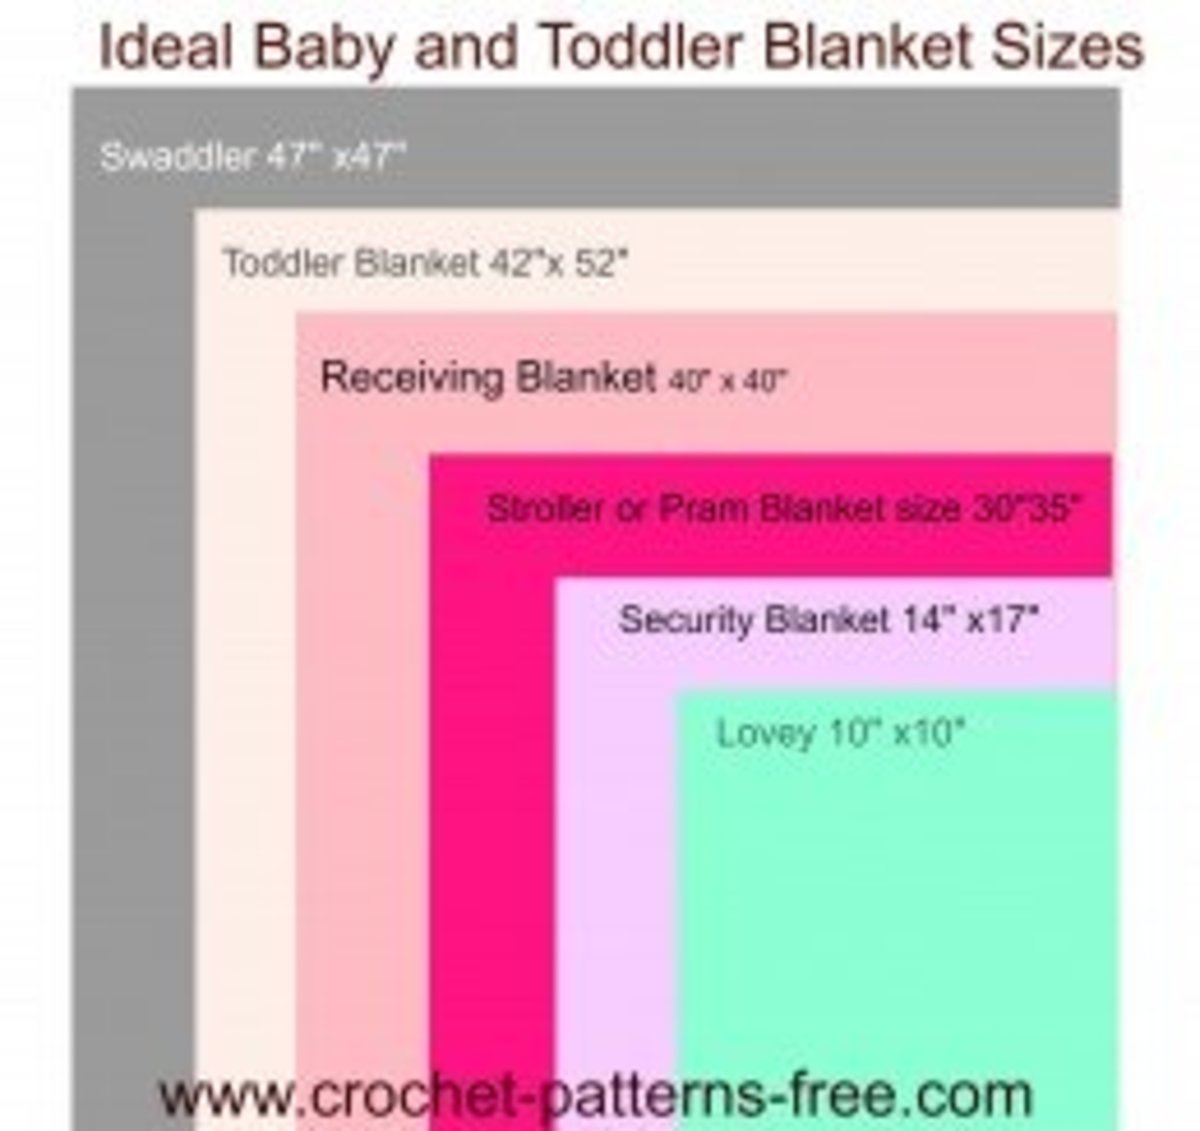 How to Crochet an Easy Baby Blanket Ideal for Beginners (Free Pattern and Tutorial)   FeltMagnet